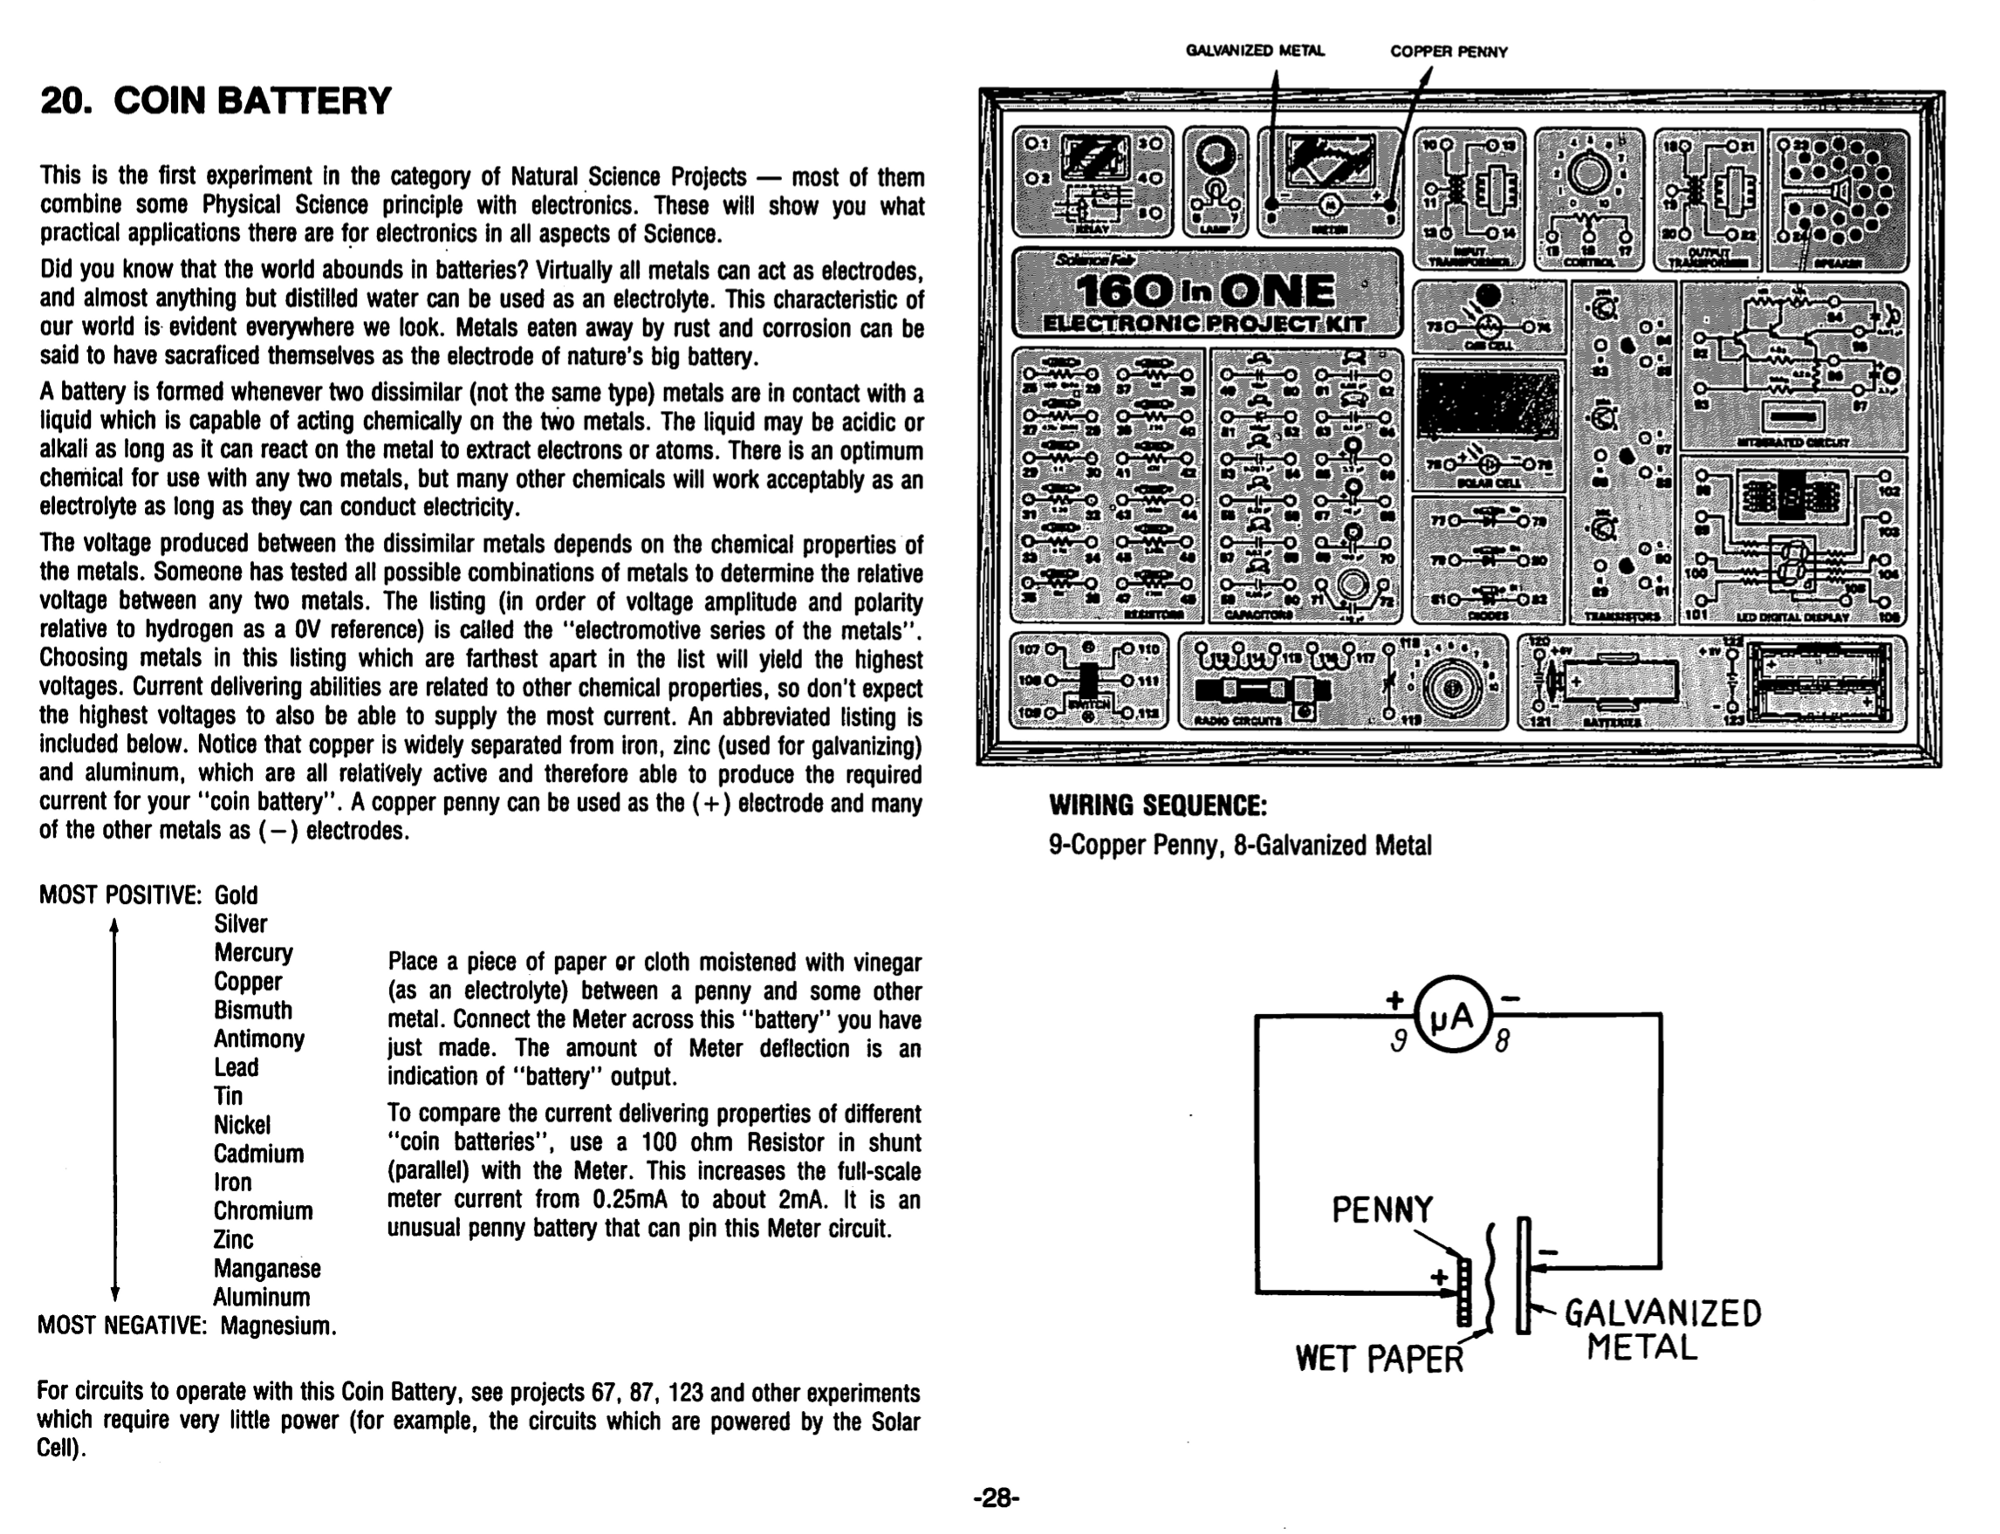 Electronic Project Kits Hands On With A Vintage 160 In 1 Sine Systems Inc Diy Audio Detection Circuit But All The Circuits This Kit Can Be Powered By Either Of These Batteries Some Both Except For 20 Coin Battery And Related Projects Which Itself